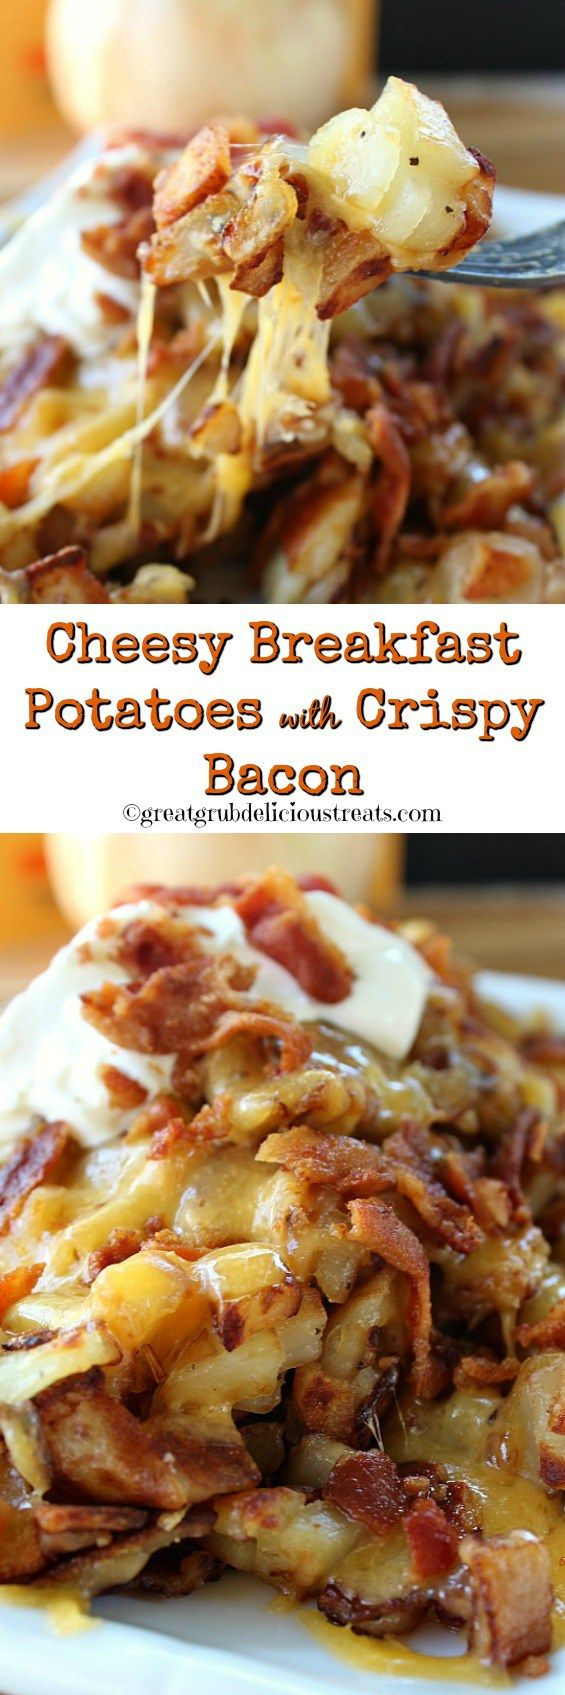 Cheesy Breakfast Potatoes with Crispy Bacon - These potatoes are loaded with cheese and one of the most amazing foods, apple wood bacon. Great comfort food!